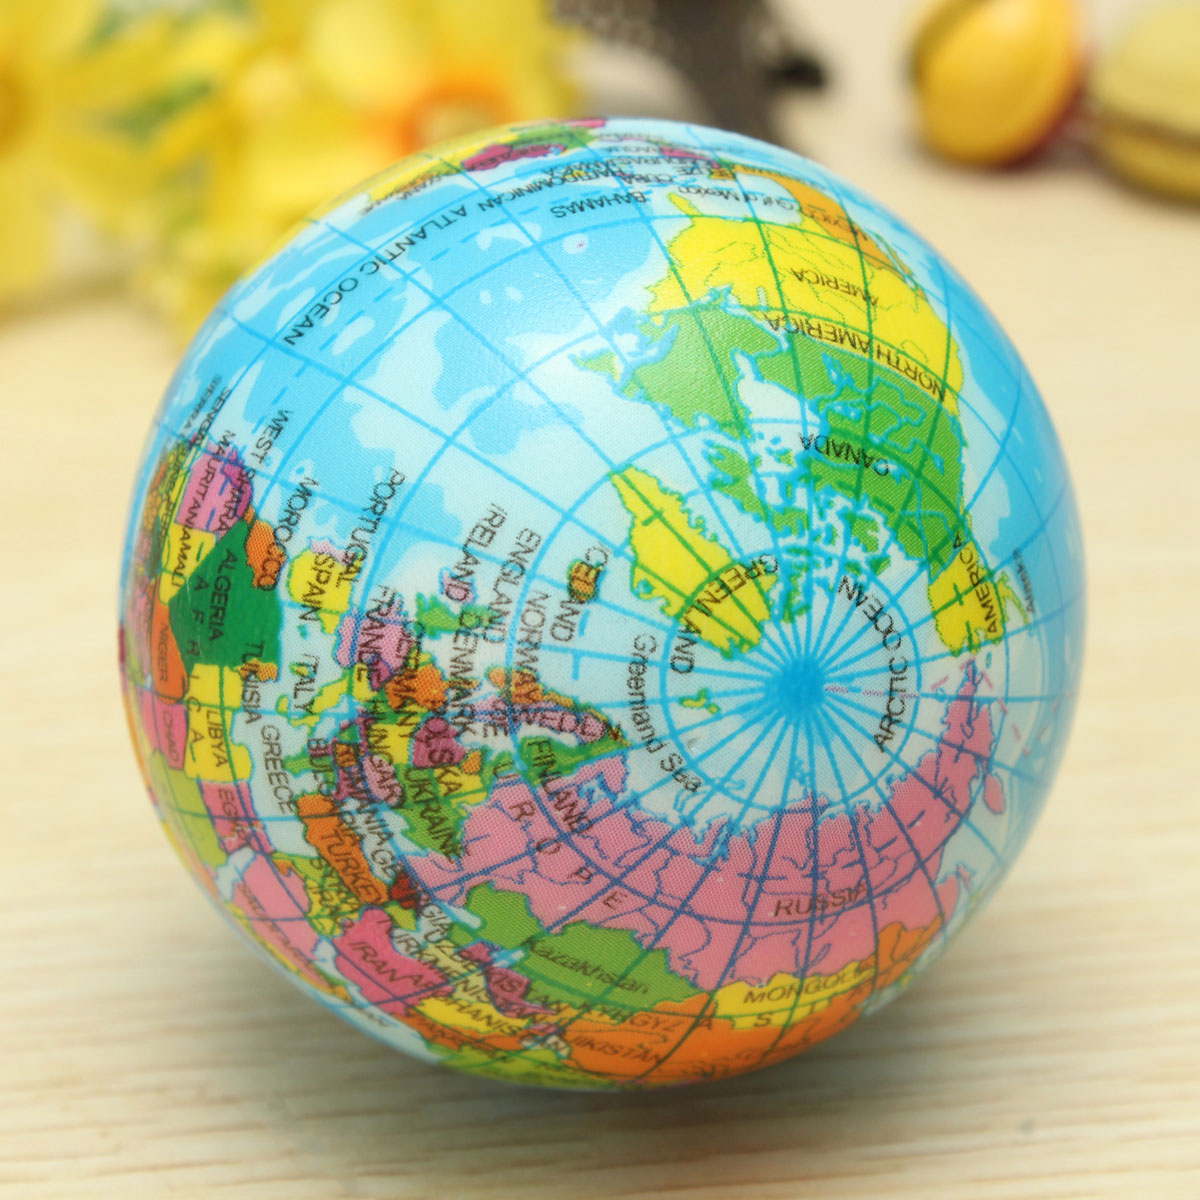 Earth globe planet world map foam stress relief bouncy press ball 53bc09ed 01ac f24b 43ce a6ee480add97g gumiabroncs Choice Image